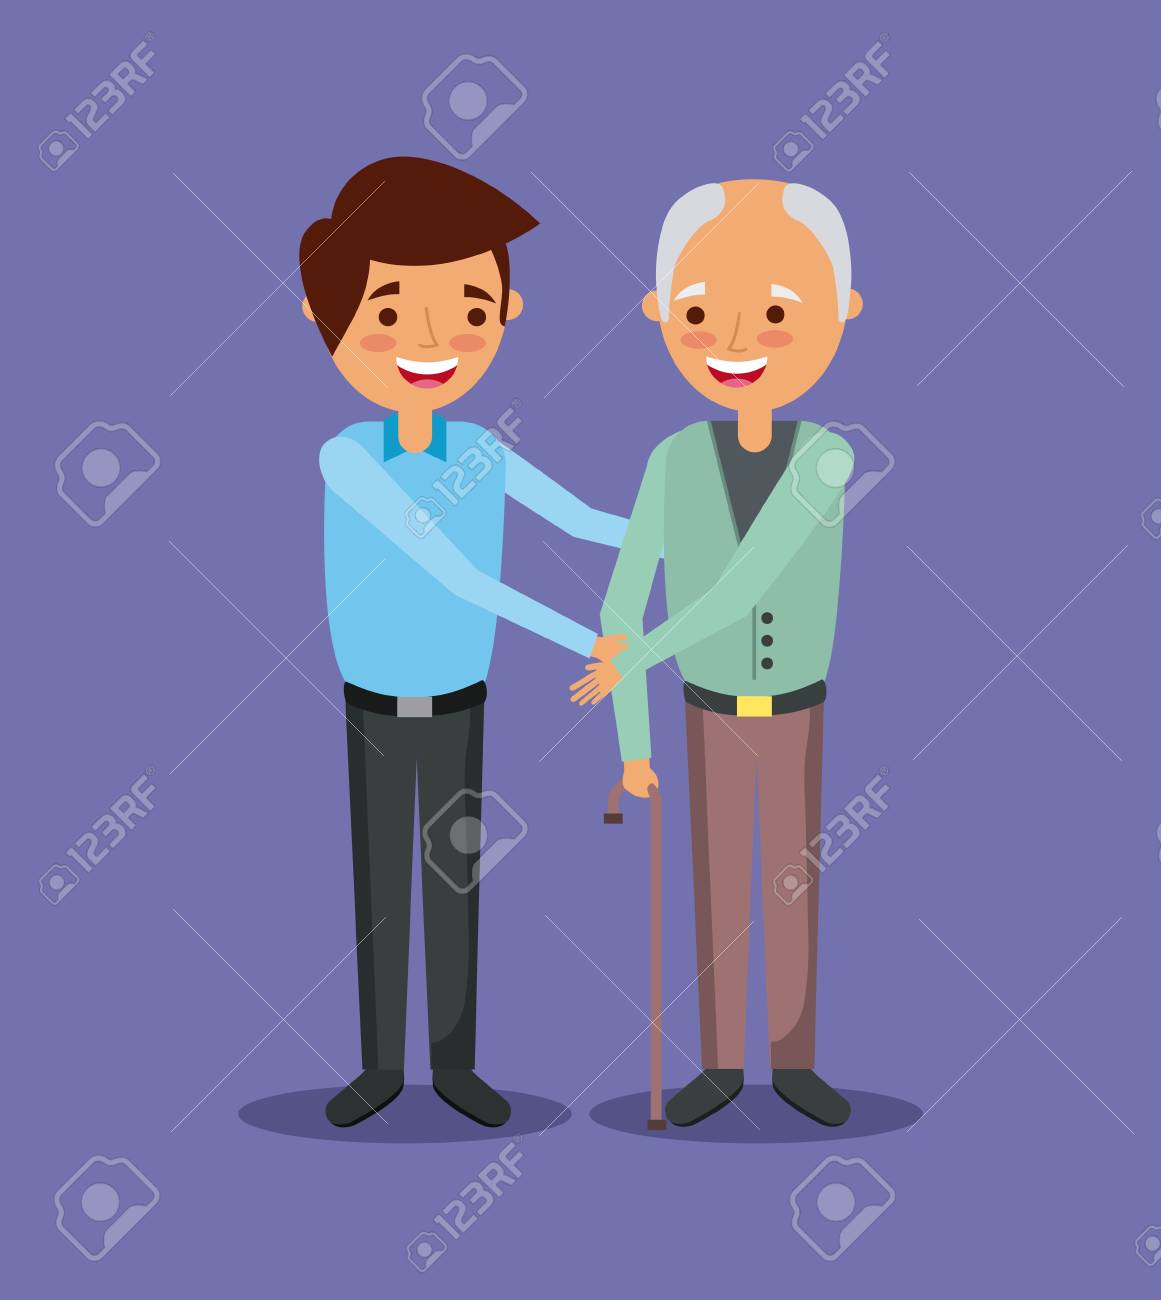 young man with old man holding hand help together vector illustration - 90419336